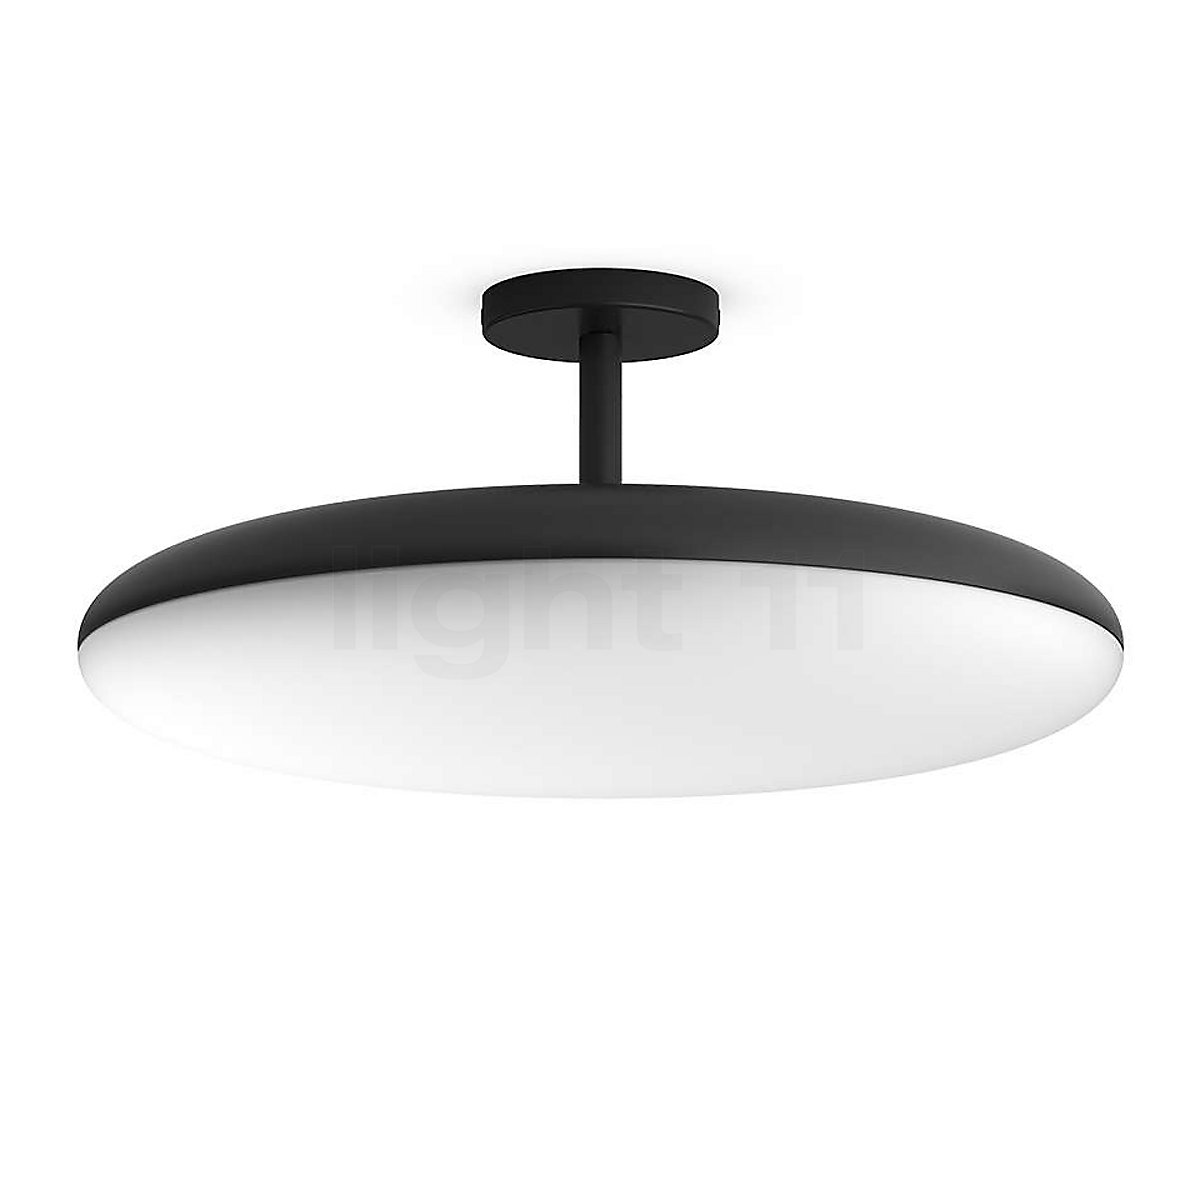 best service 6c8b6 361db Philips Hue Cher Semi-Flushmount Ceiling Light